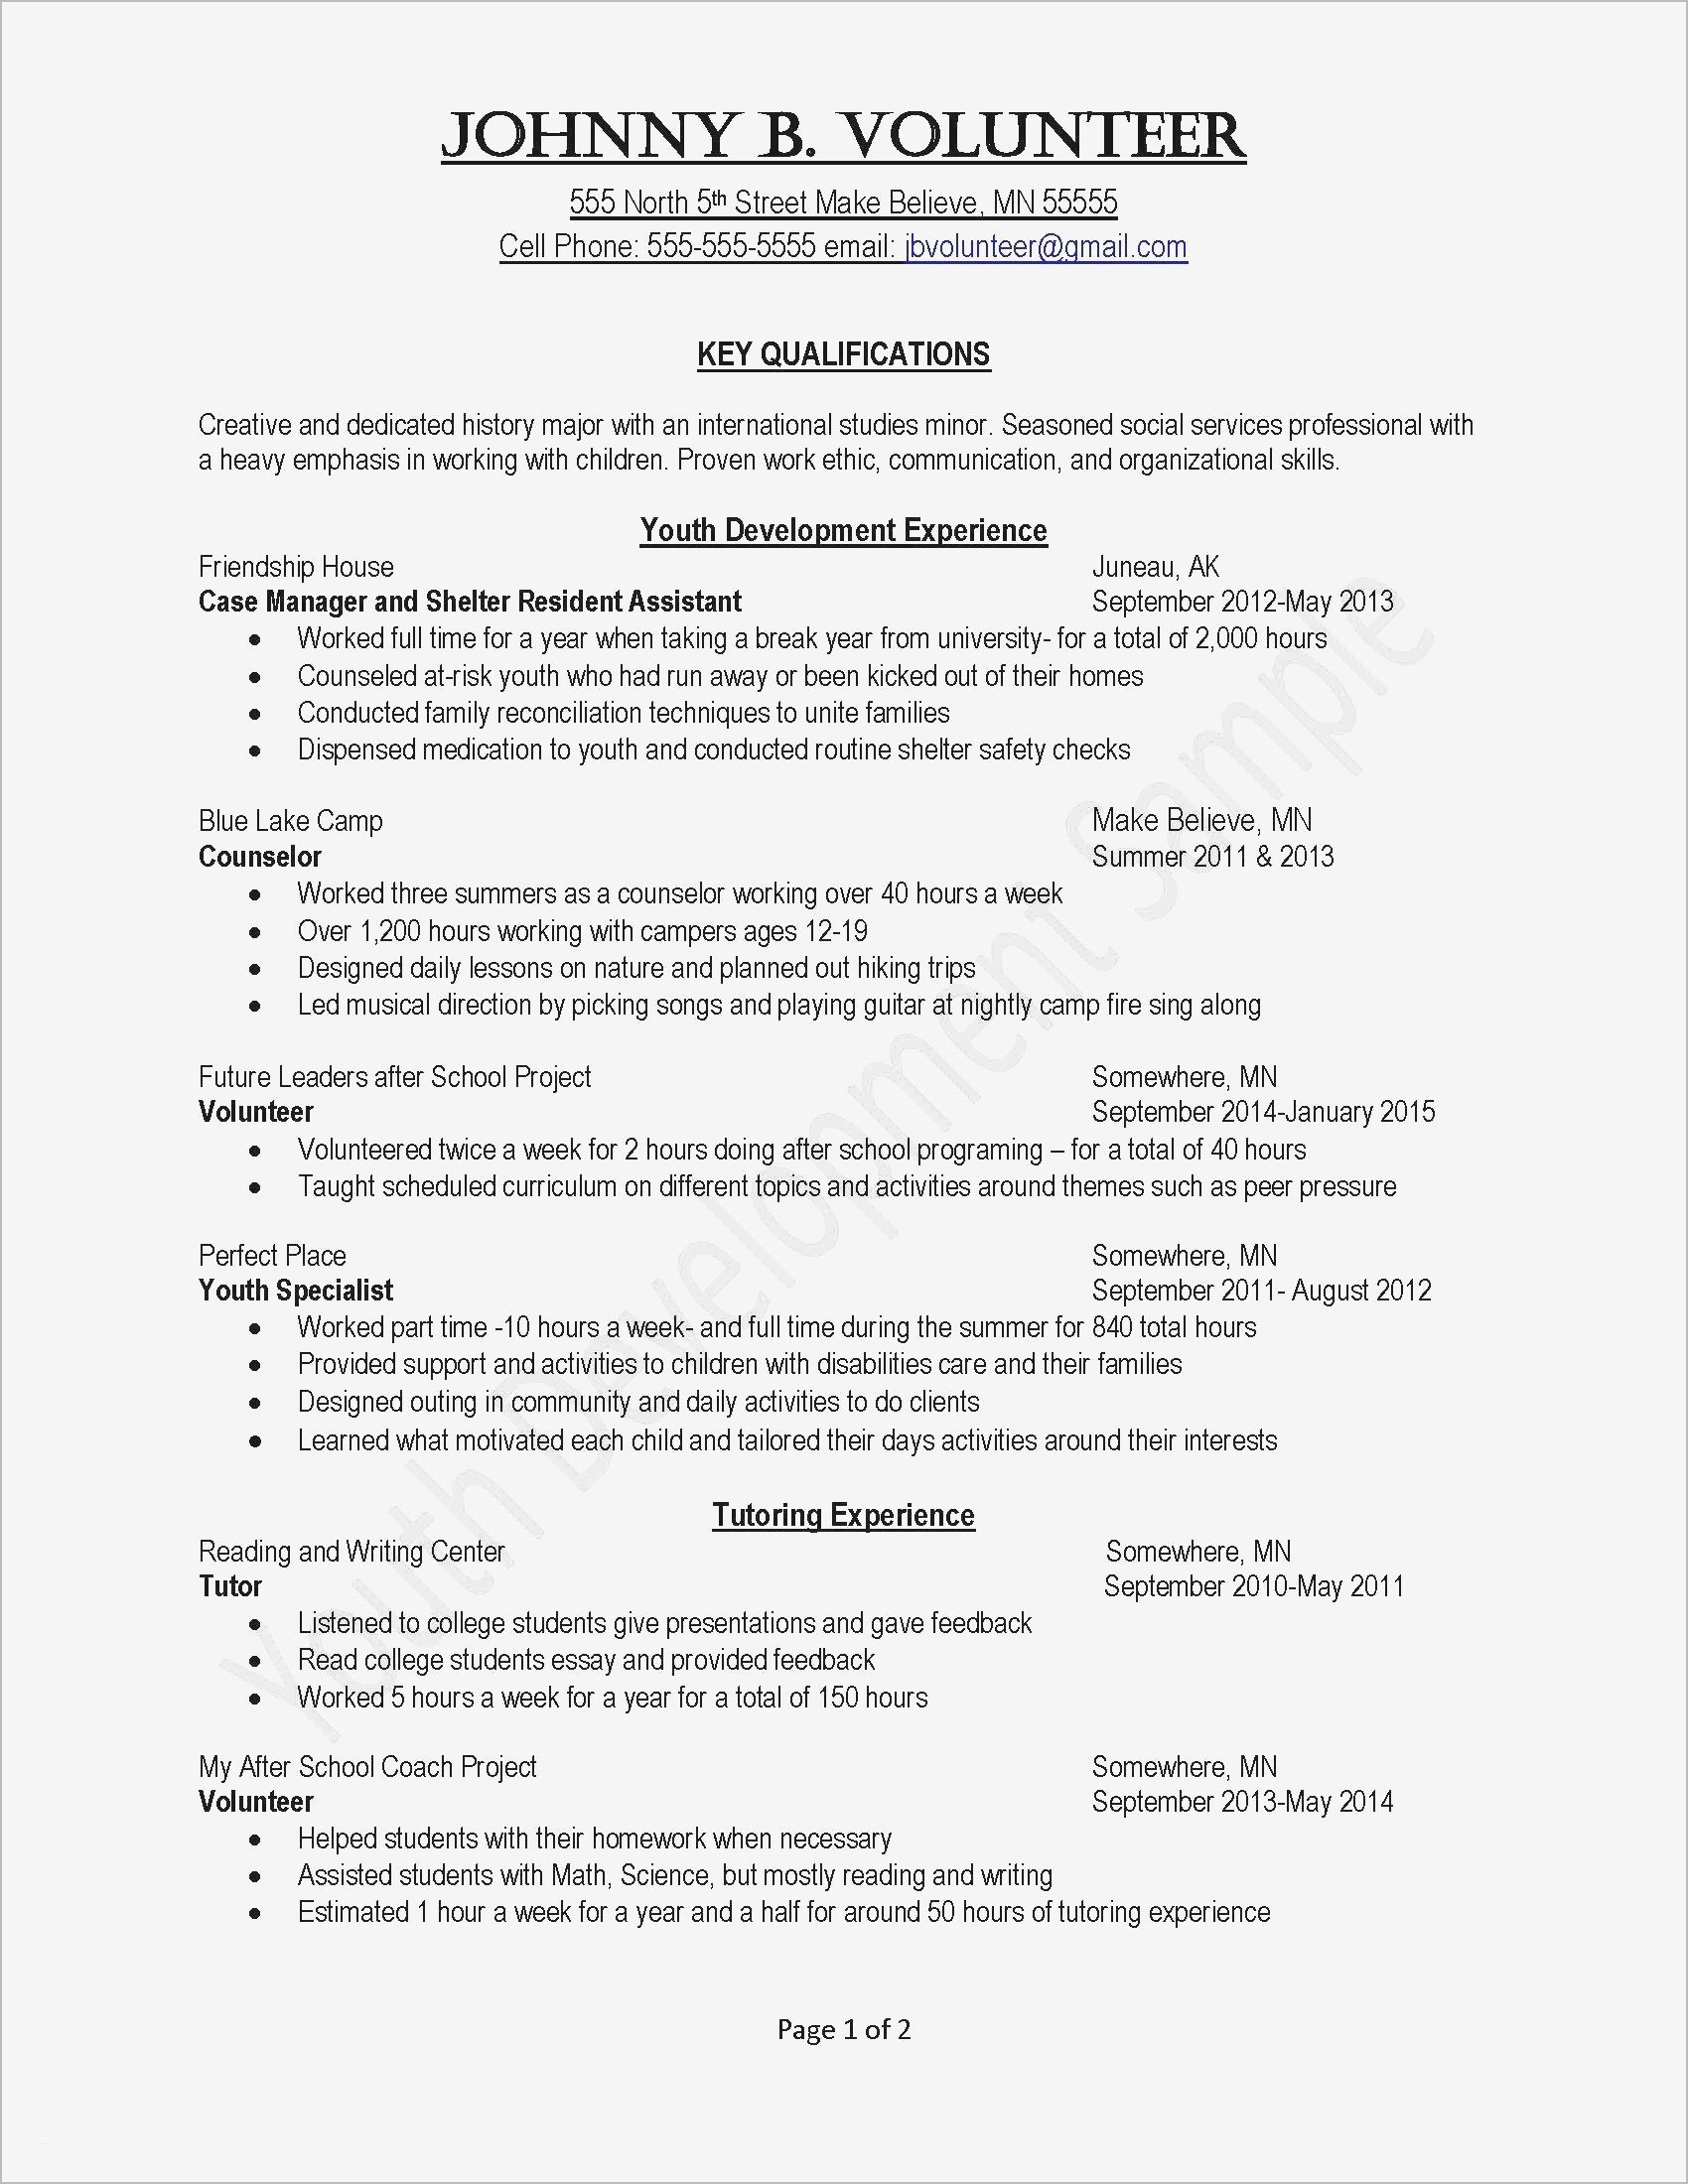 Create Letter Template - Activities Resume Template Valid Job Fer Letter Template Us Copy Od